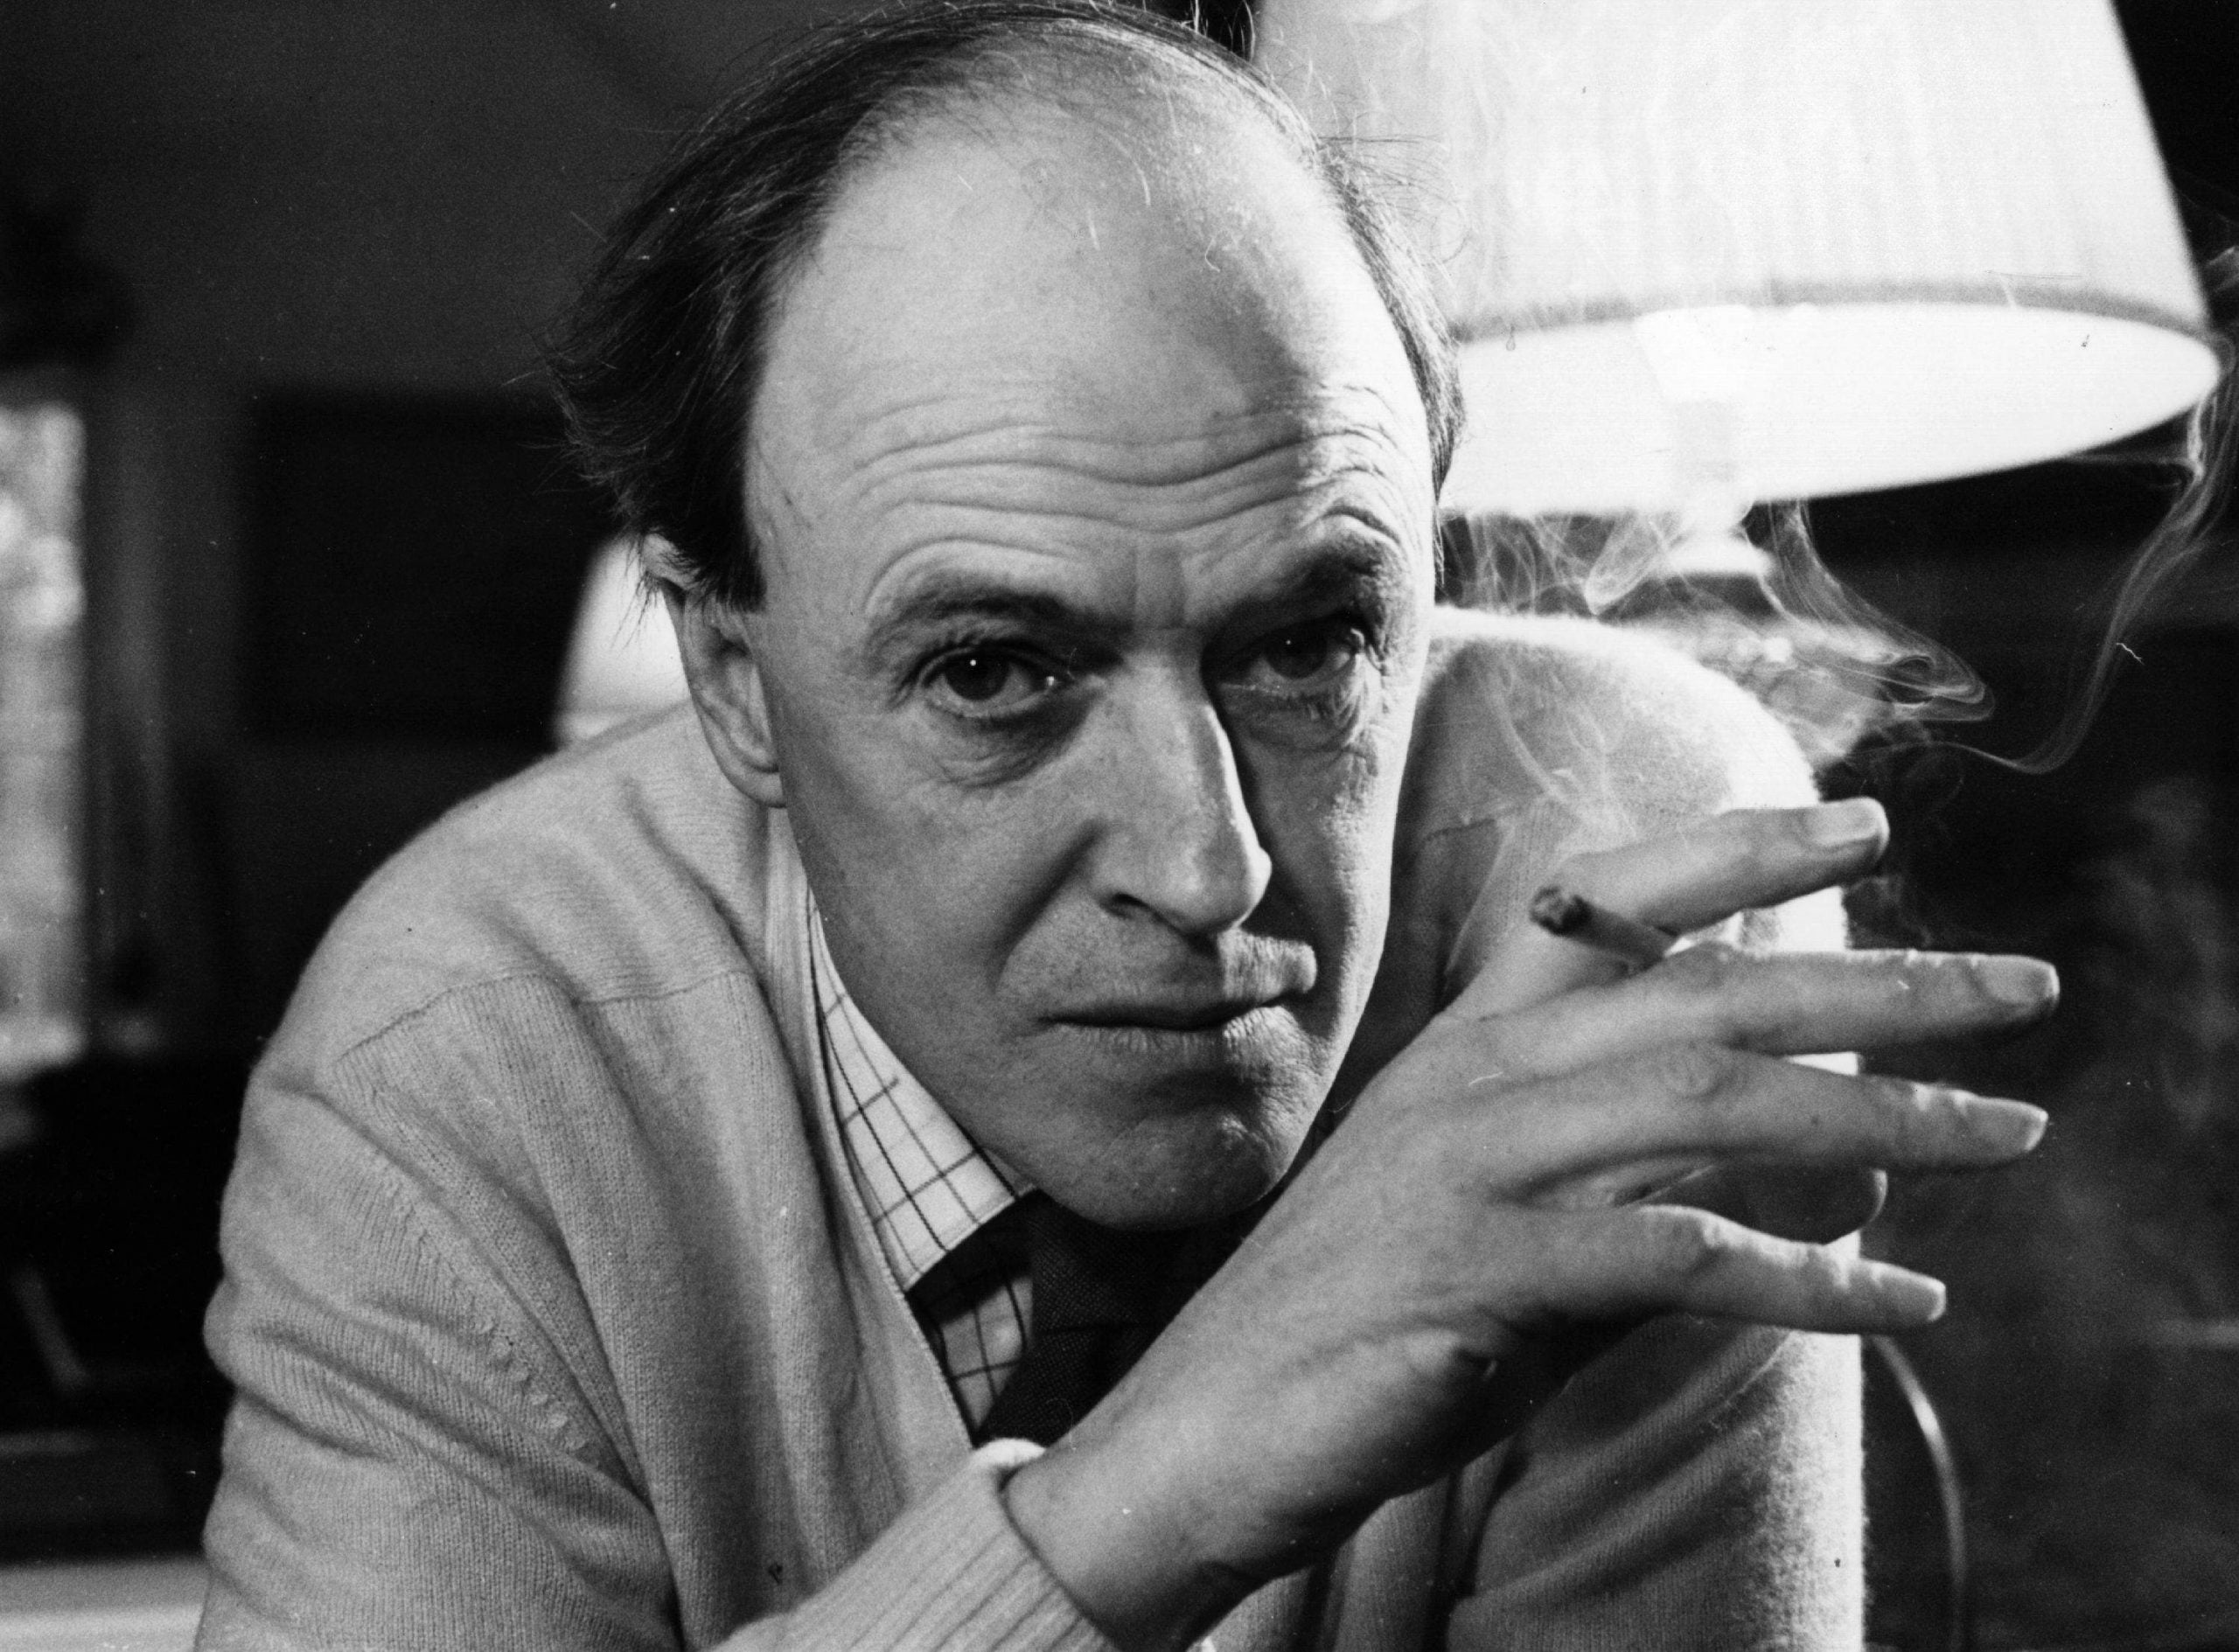 Chocolate flakes and paperweights: the mesmerizing voice of Roald Dahl